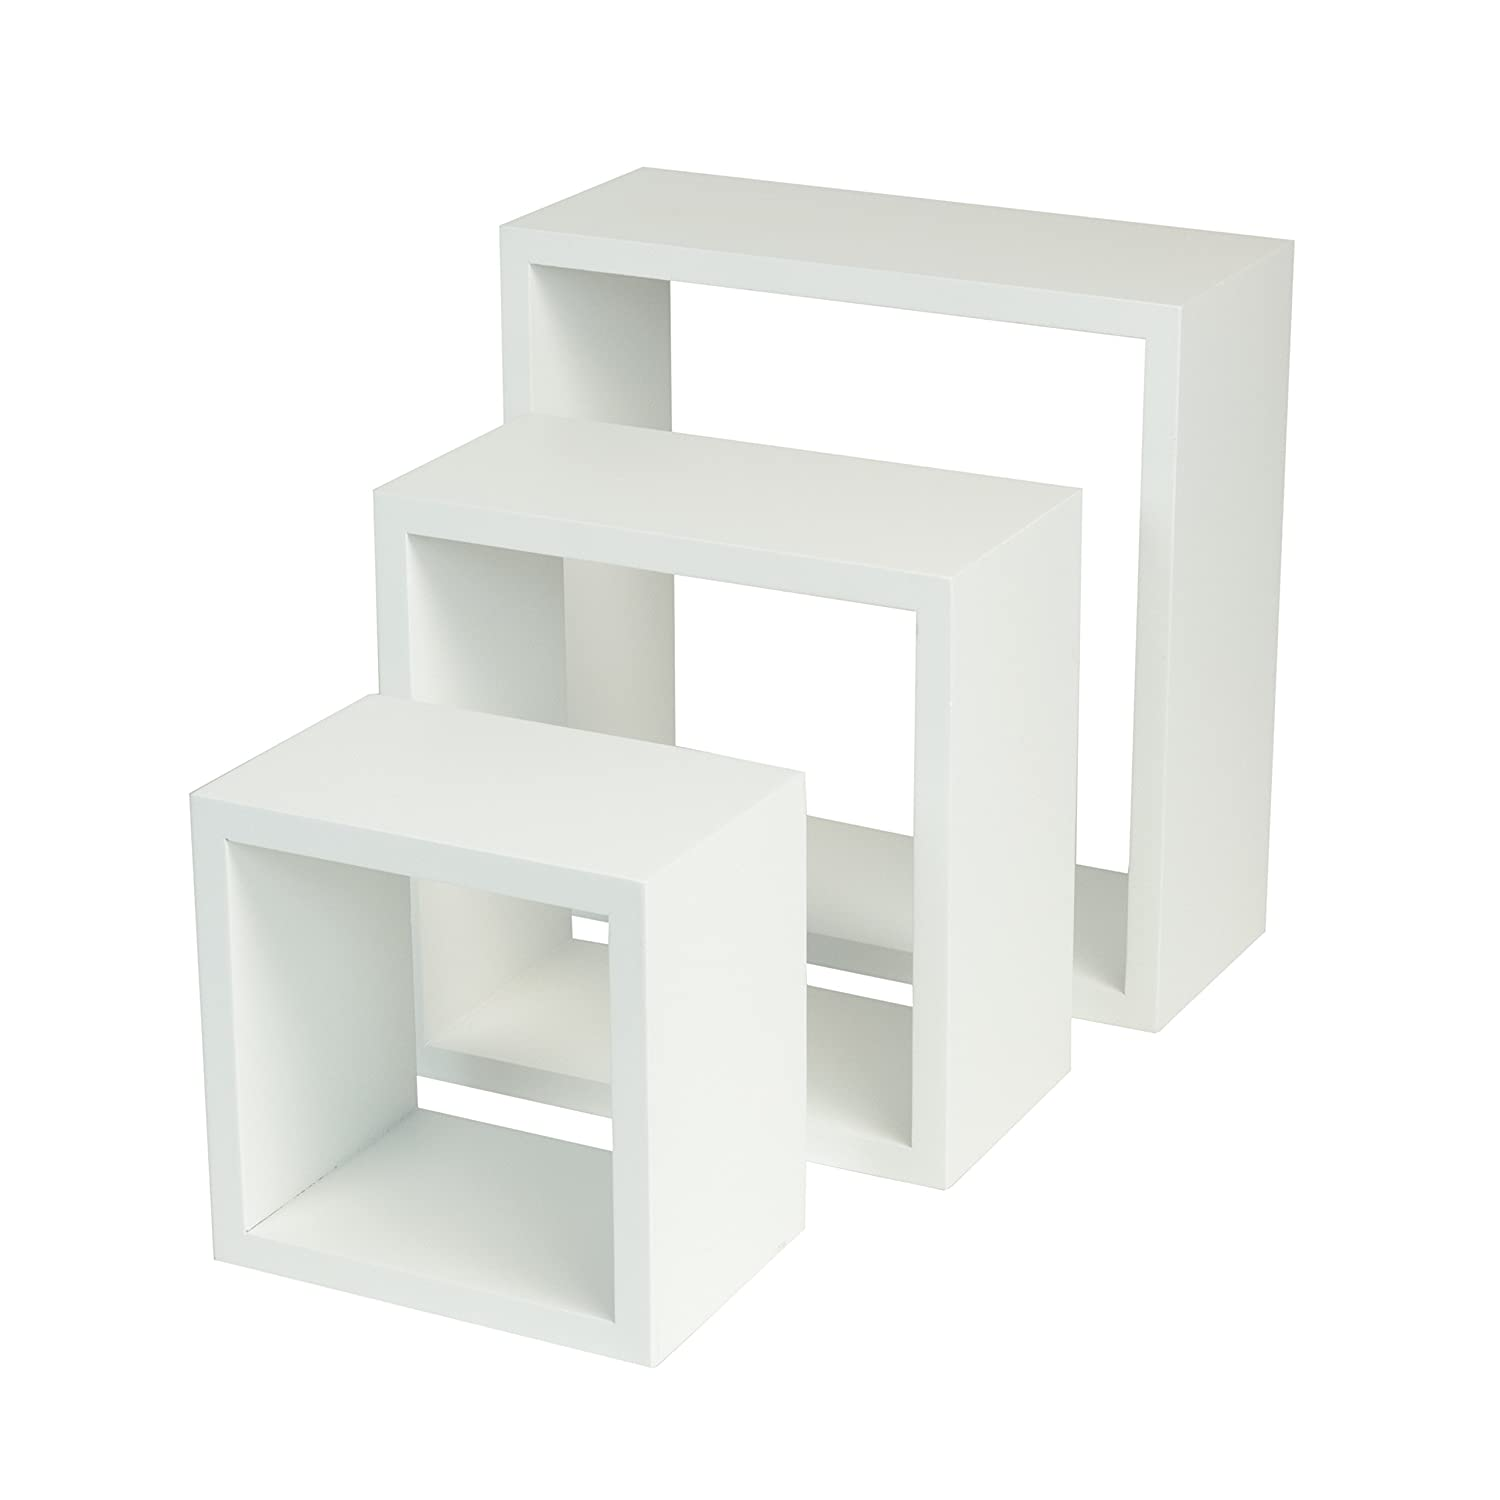 Amazon.com: WALLNITURE Modern Home Decor Square Cube Floating Wall Shelf  White Set of 3: Home & Kitchen